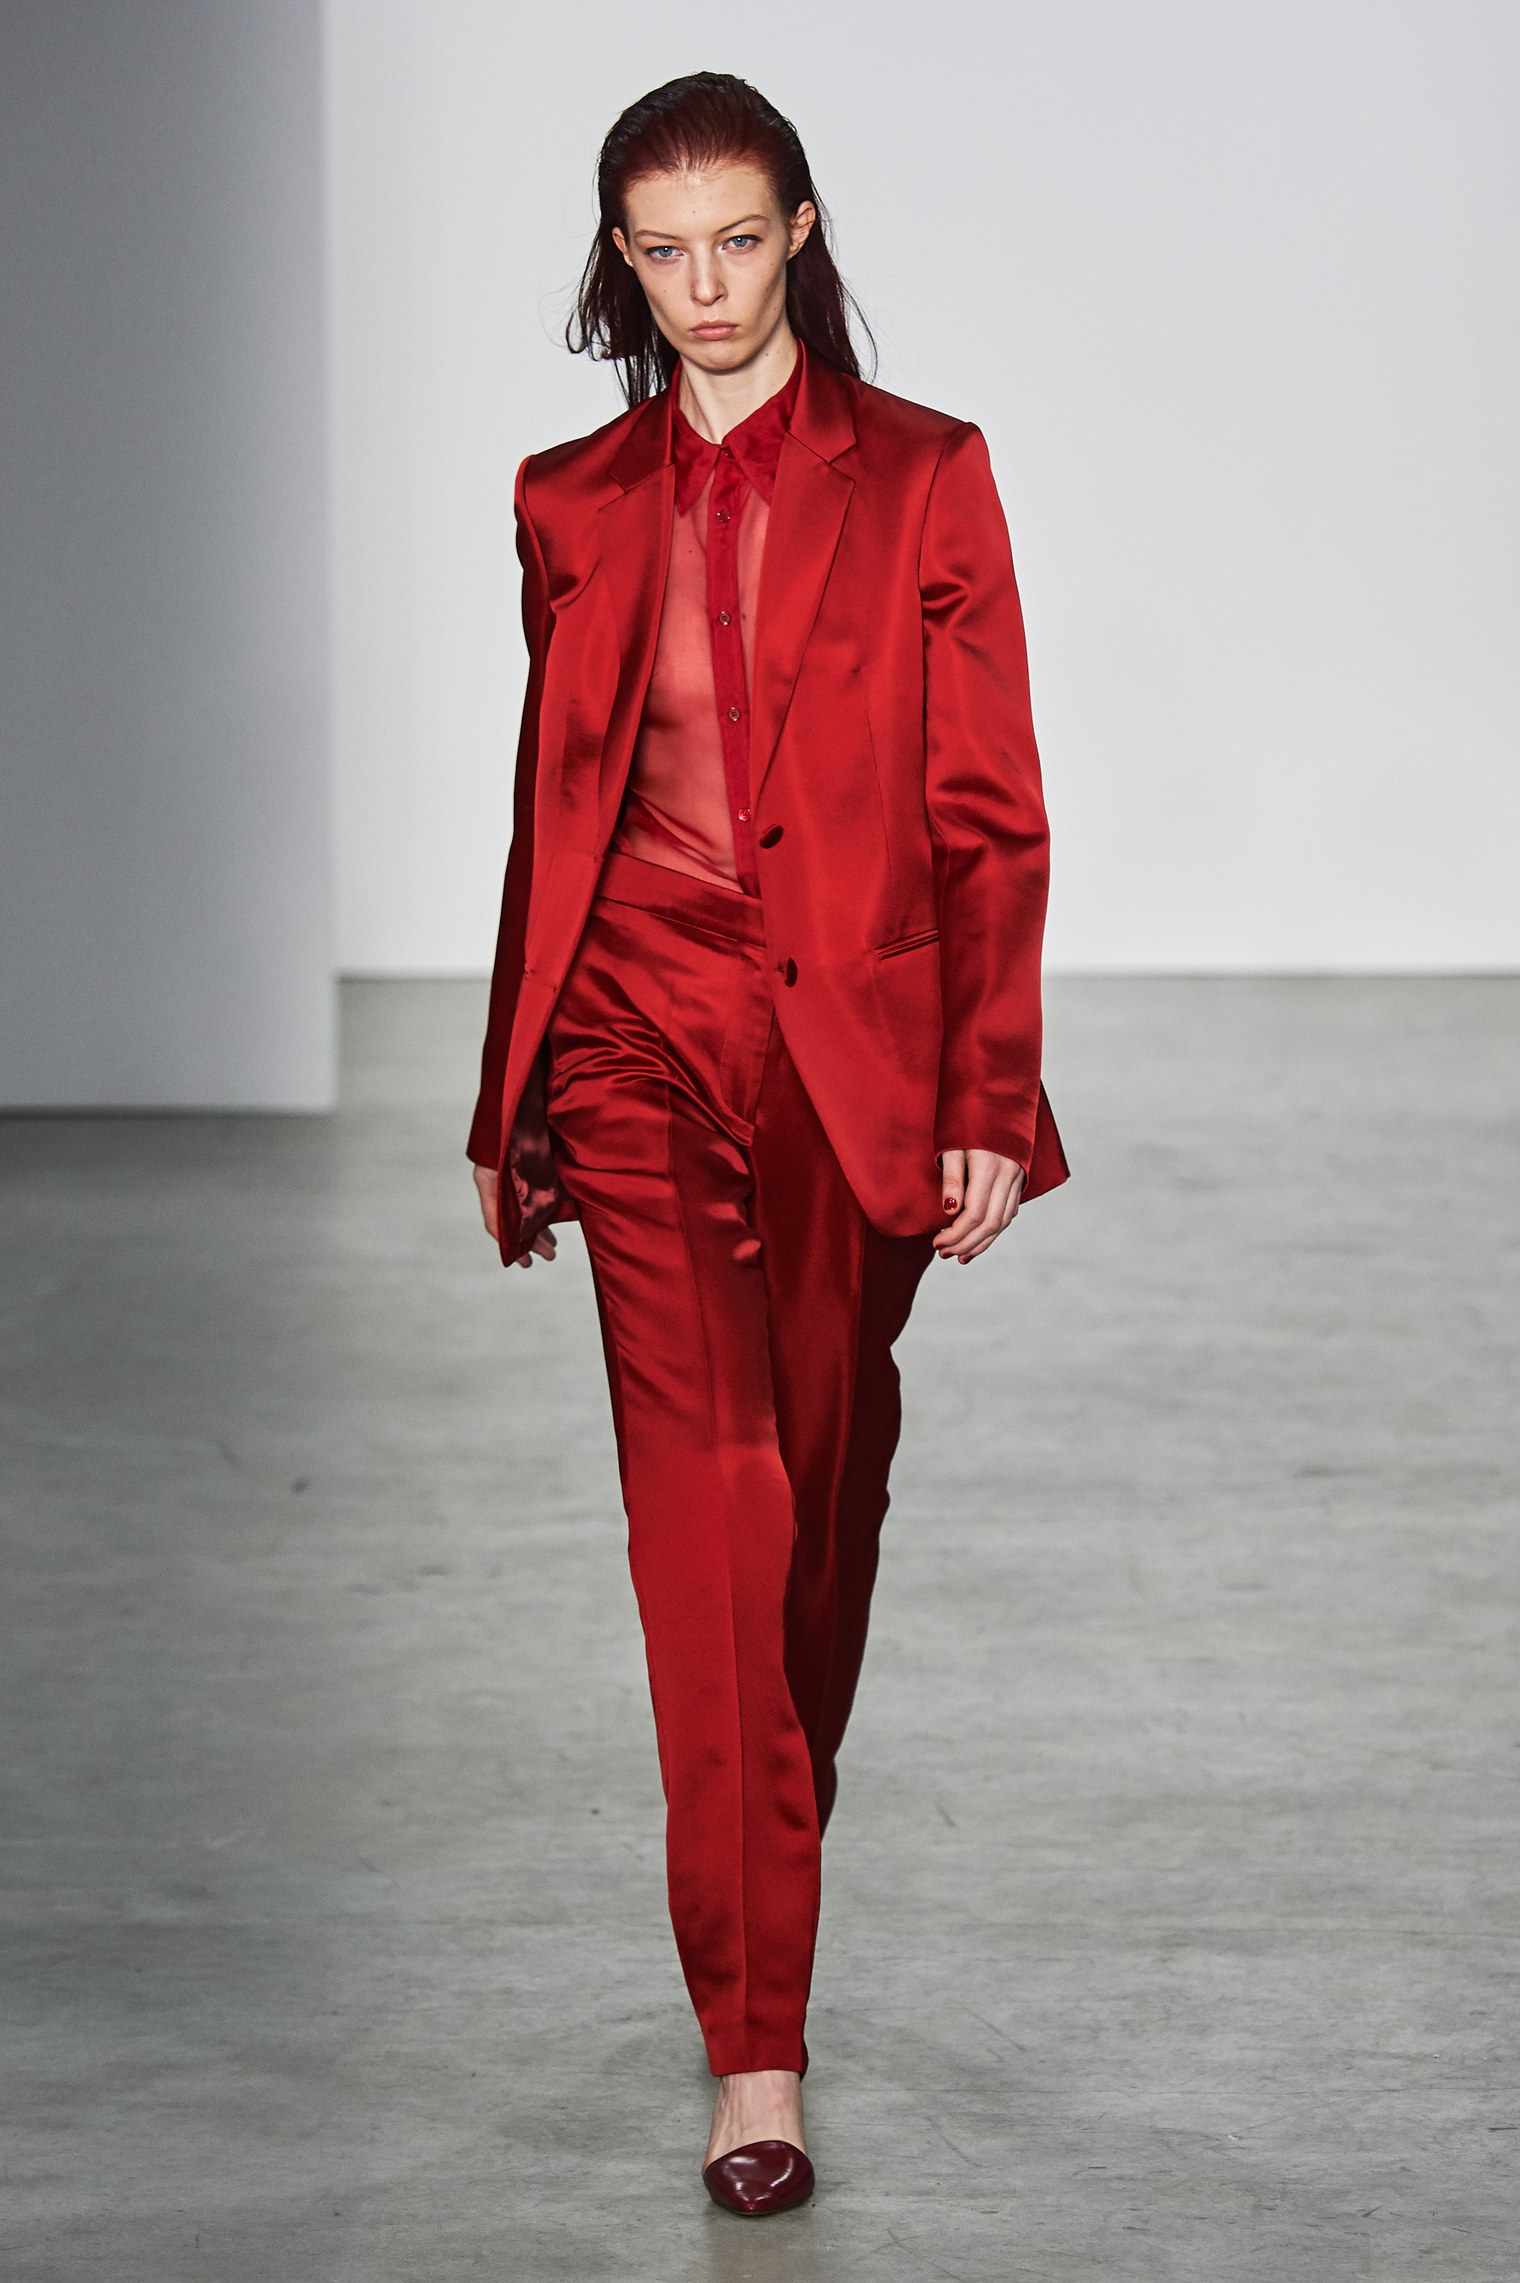 HELMUT LANG, COURTESY VOGUE RUNWAY